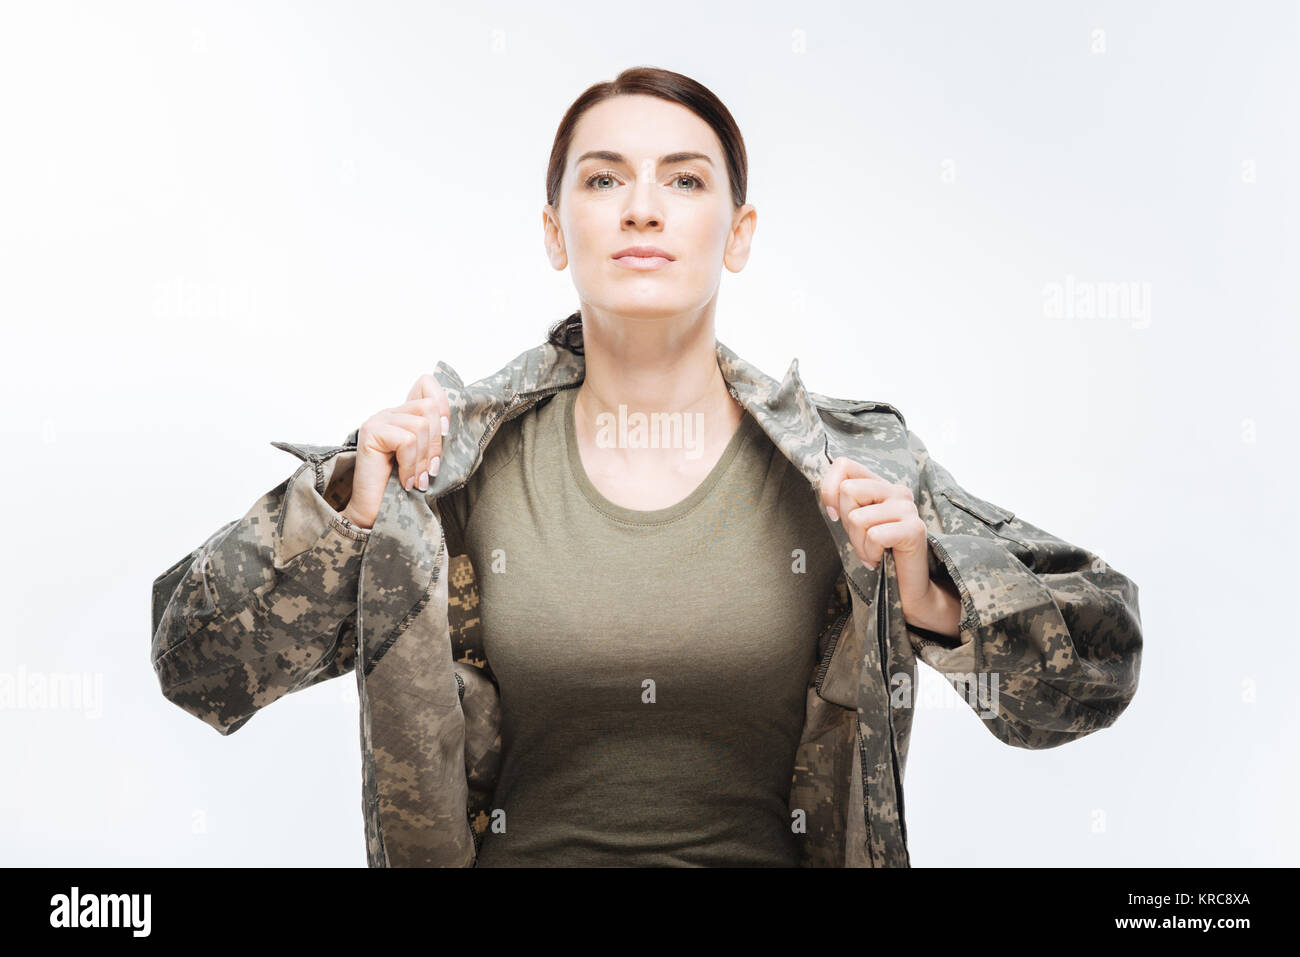 Earnest ambitious woman taking on uniform - Stock Image